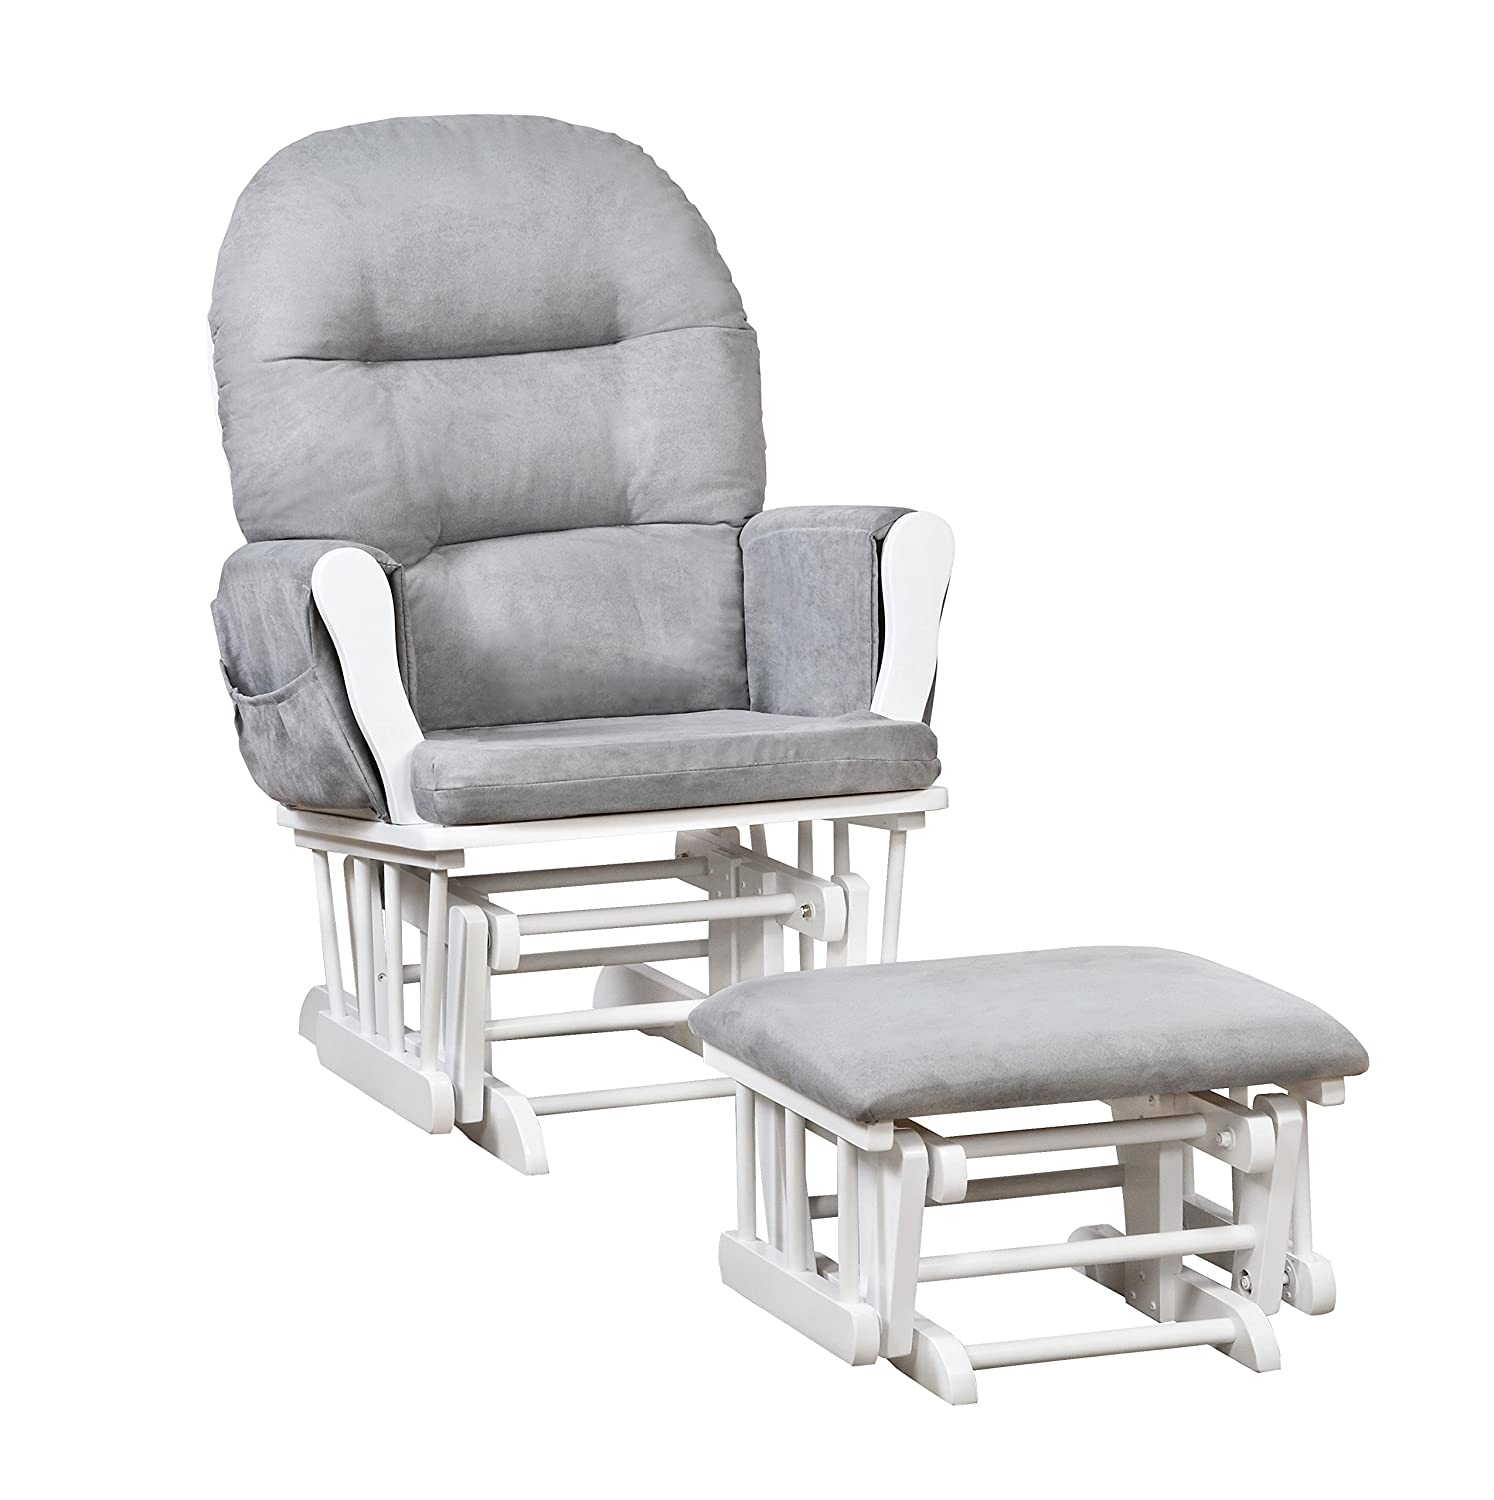 Amazon.com: Naomi Home Brisbane Glider & Ottoman Set with Cushion in Cream  and Finish in Espresso: Kitchen & Dining - Amazon.com: Naomi Home Brisbane Glider & Ottoman Set With Cushion